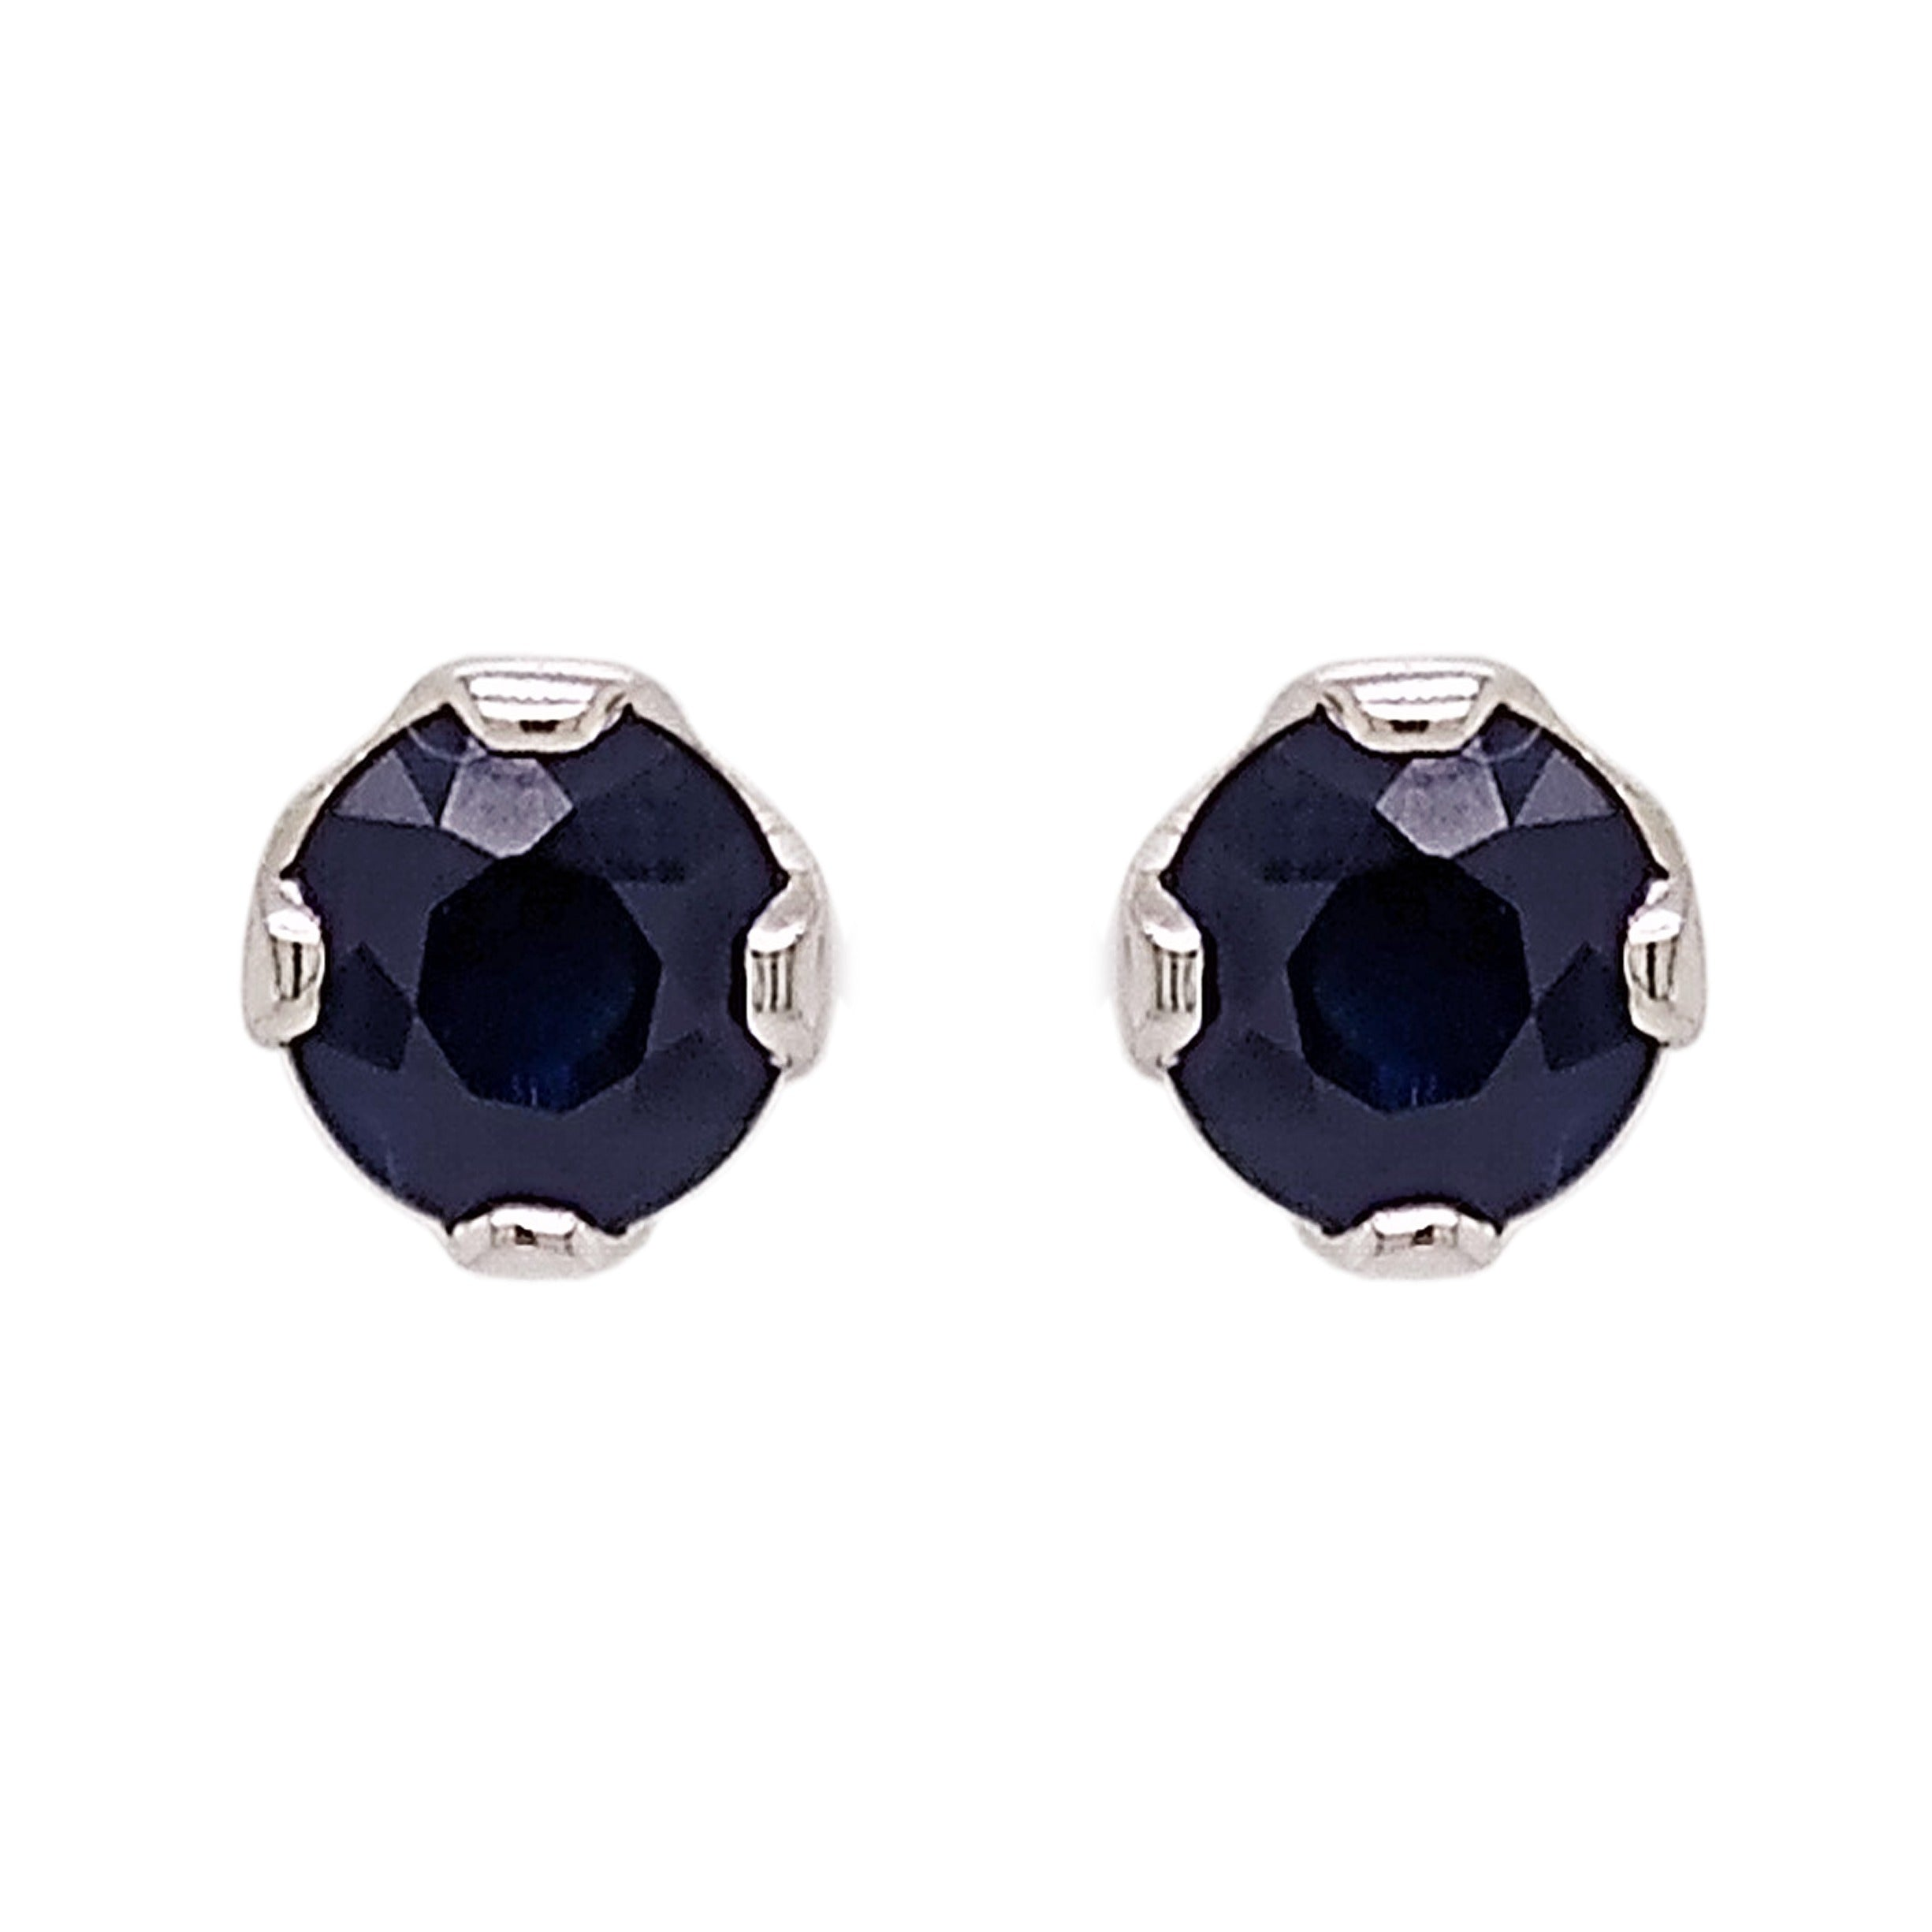 18ct White Gold Sapphire Lotus Stud Earrings